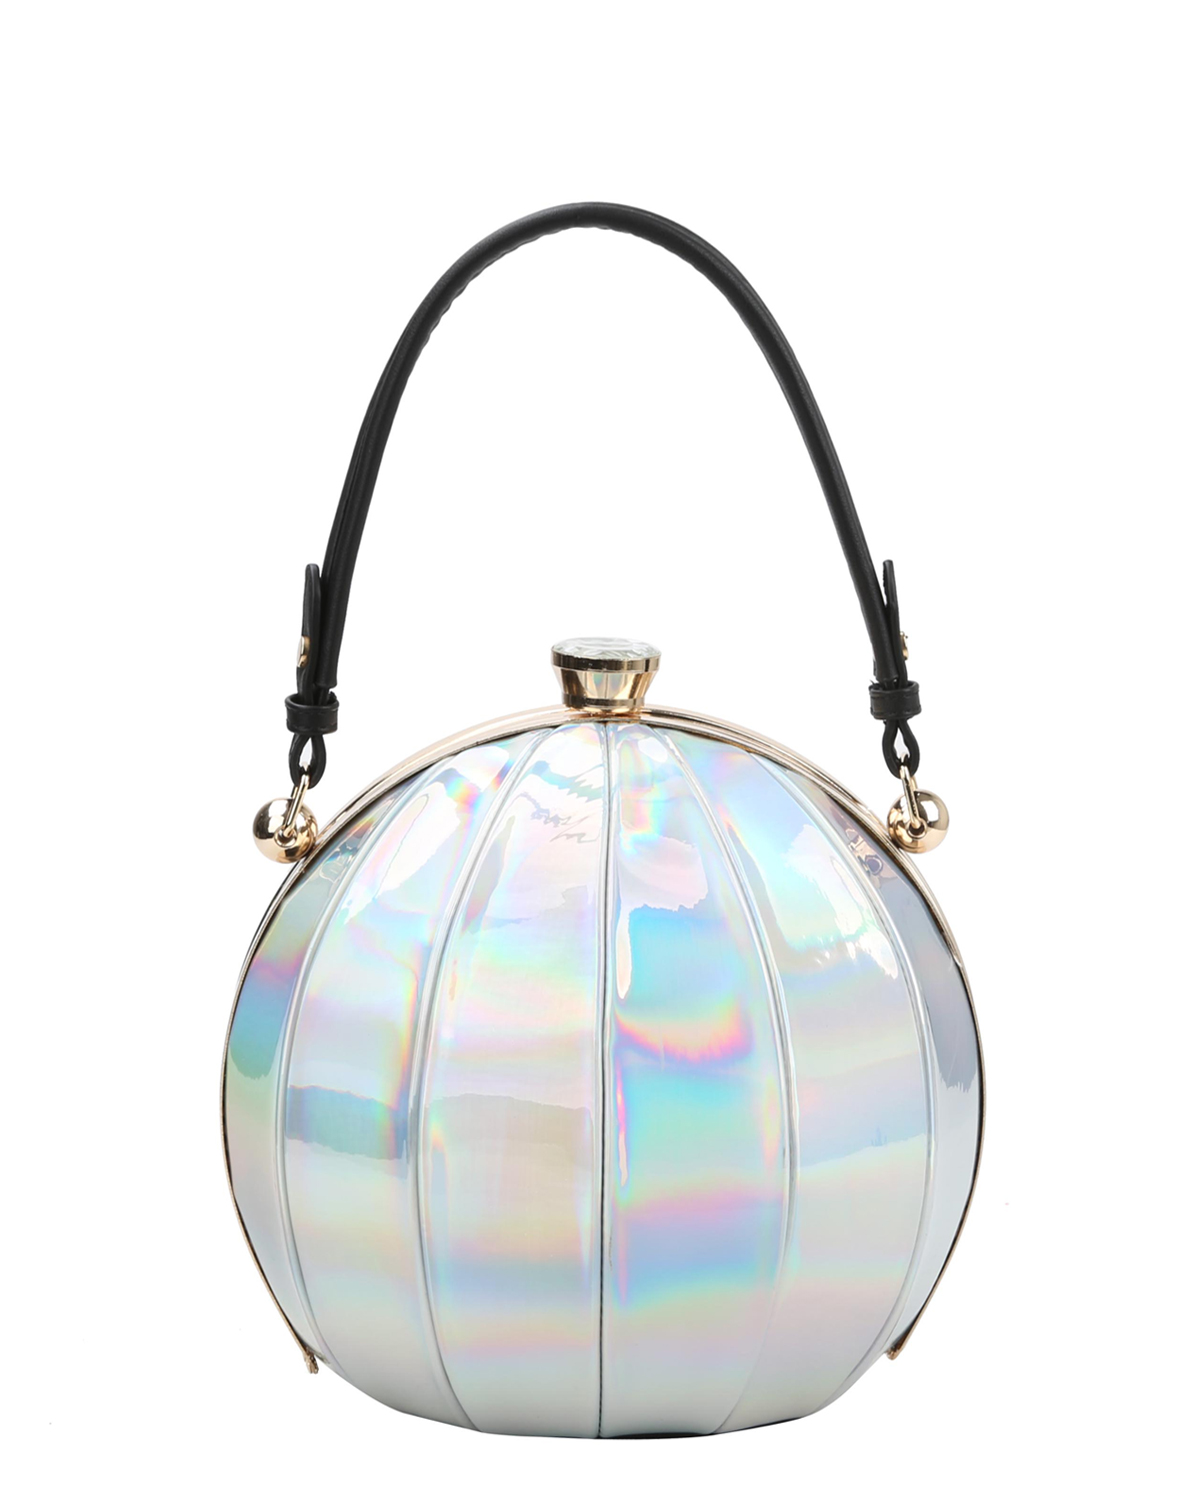 L0179(SL)-wholesale-handbag-patent-sphere-round-ball-shaped-metallic-vegan-leatherette-rhinestone-gold-frame-(0).jpg